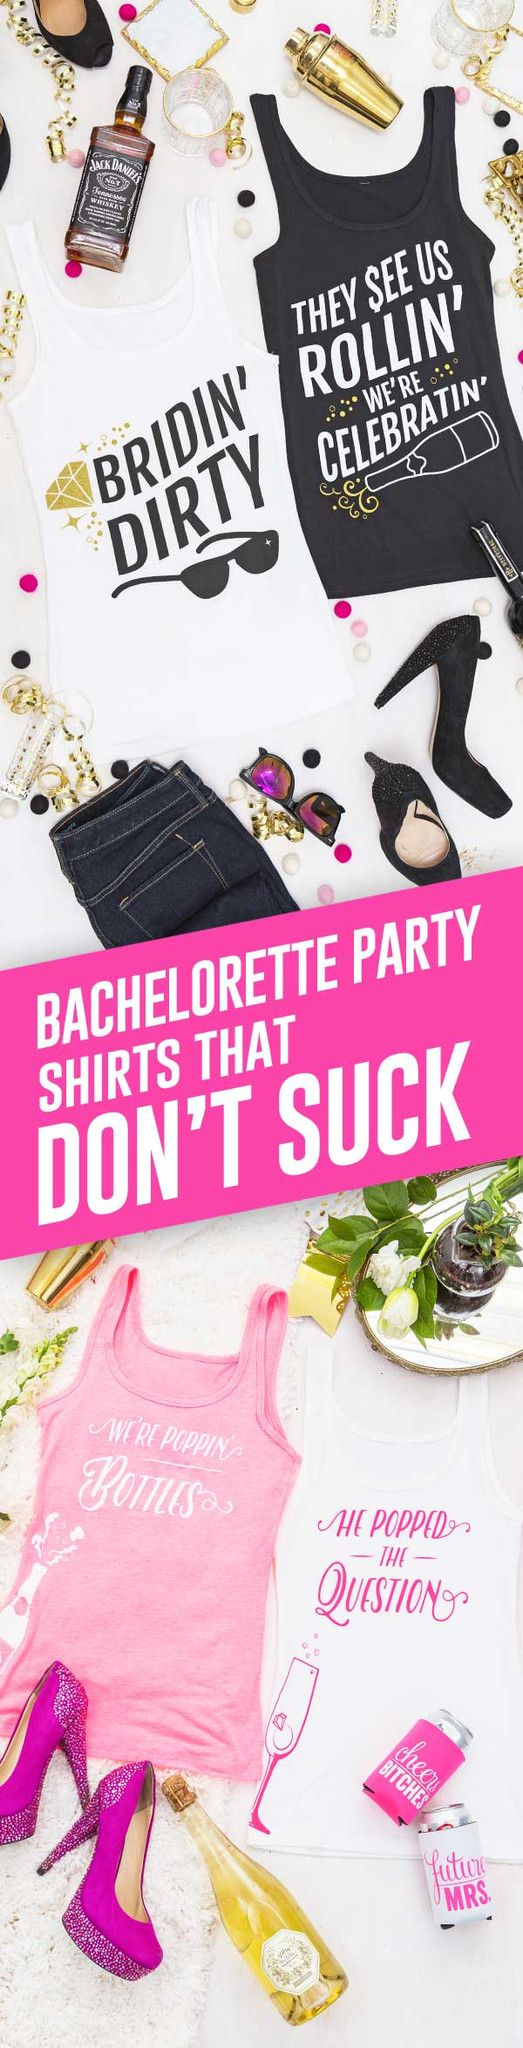 Oodles of funny bachelorette party styles designed by our team of lovable weirdos. <3 Guaranteed to help you make your party legendary or your money back!